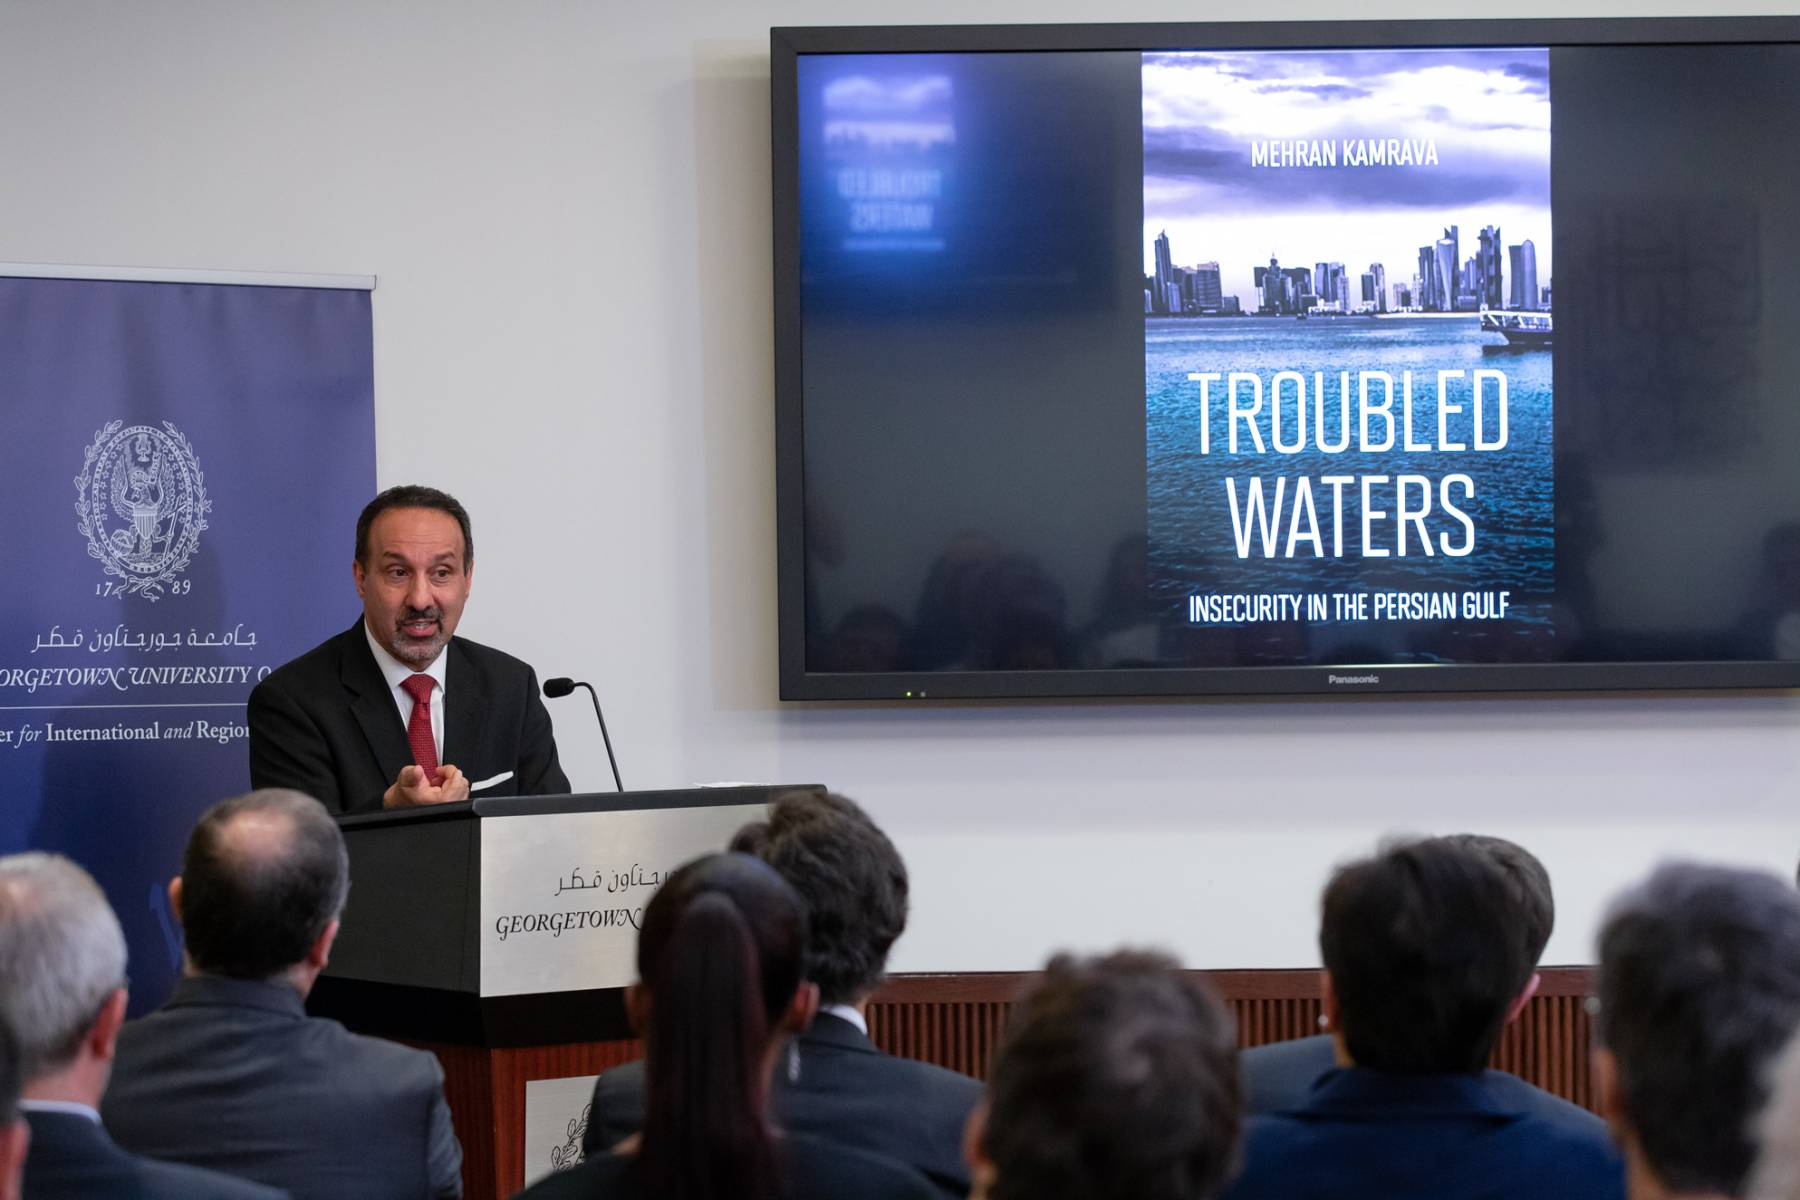 Troubled Waters: Insecurity in the Gulf